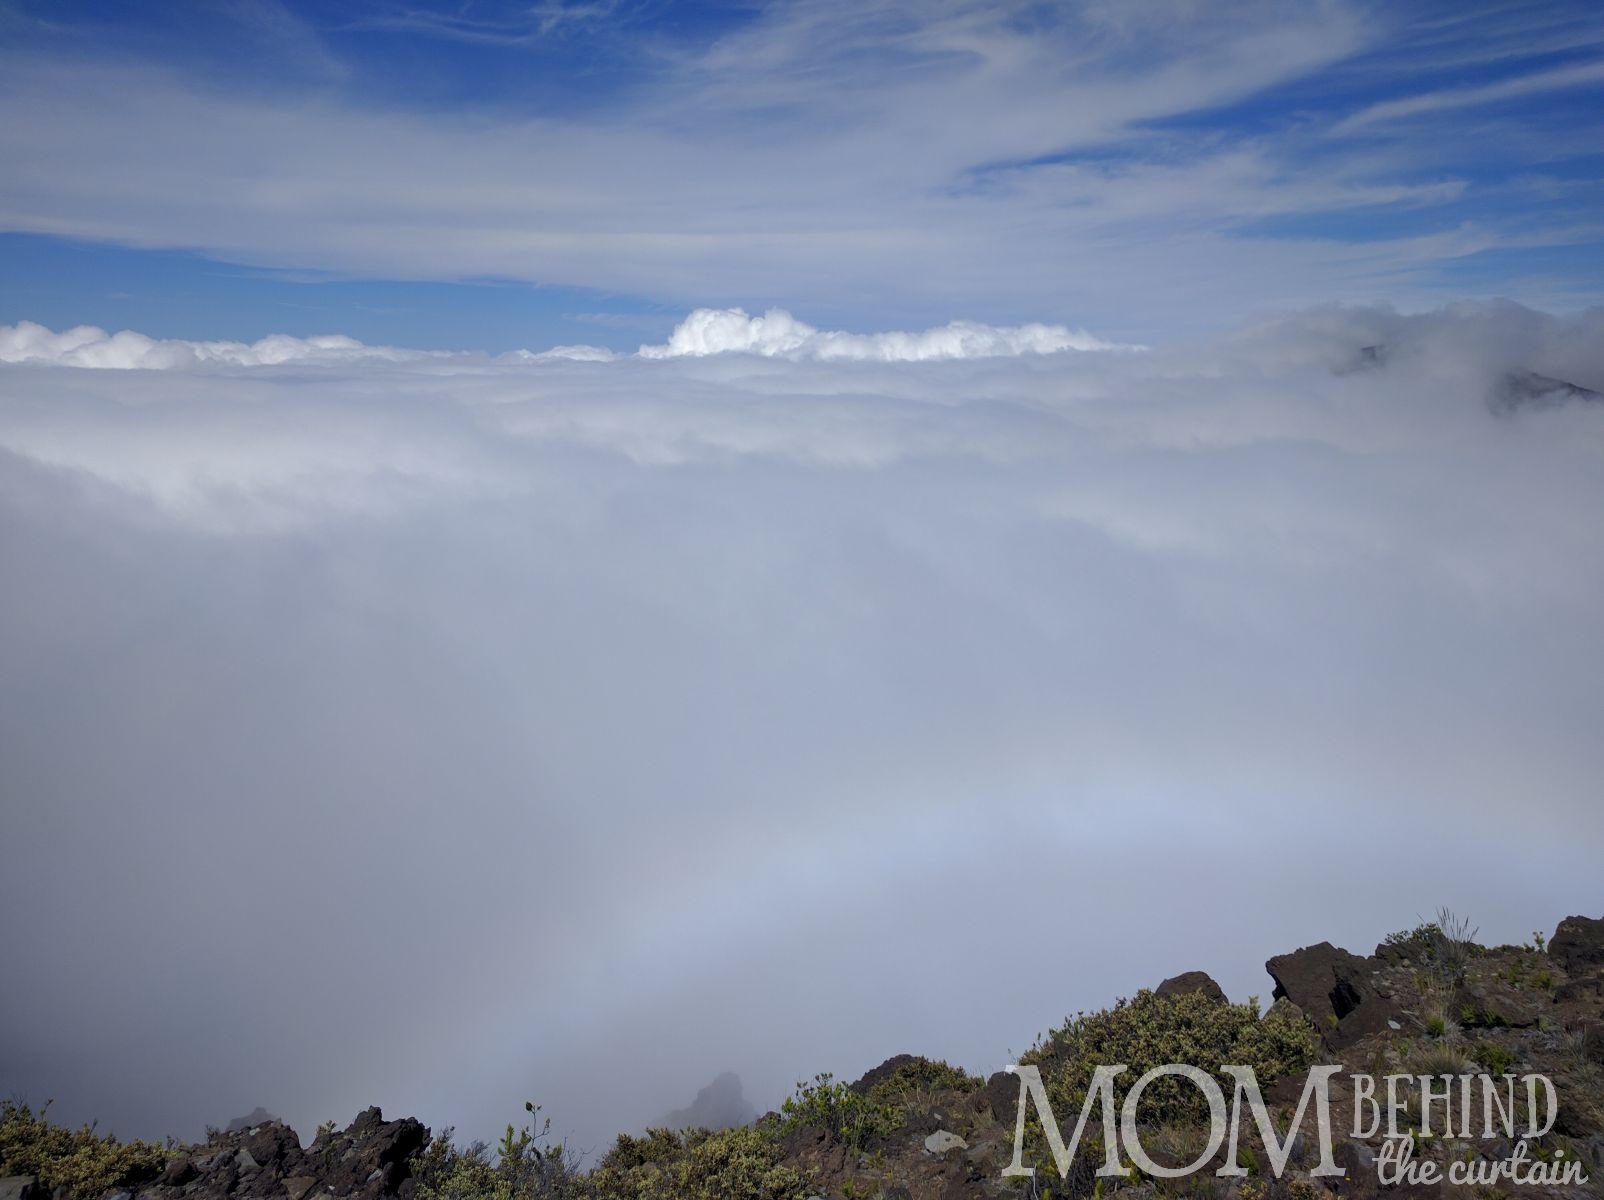 Close up view, above the clouds at Leleiwi Lookout, Maui